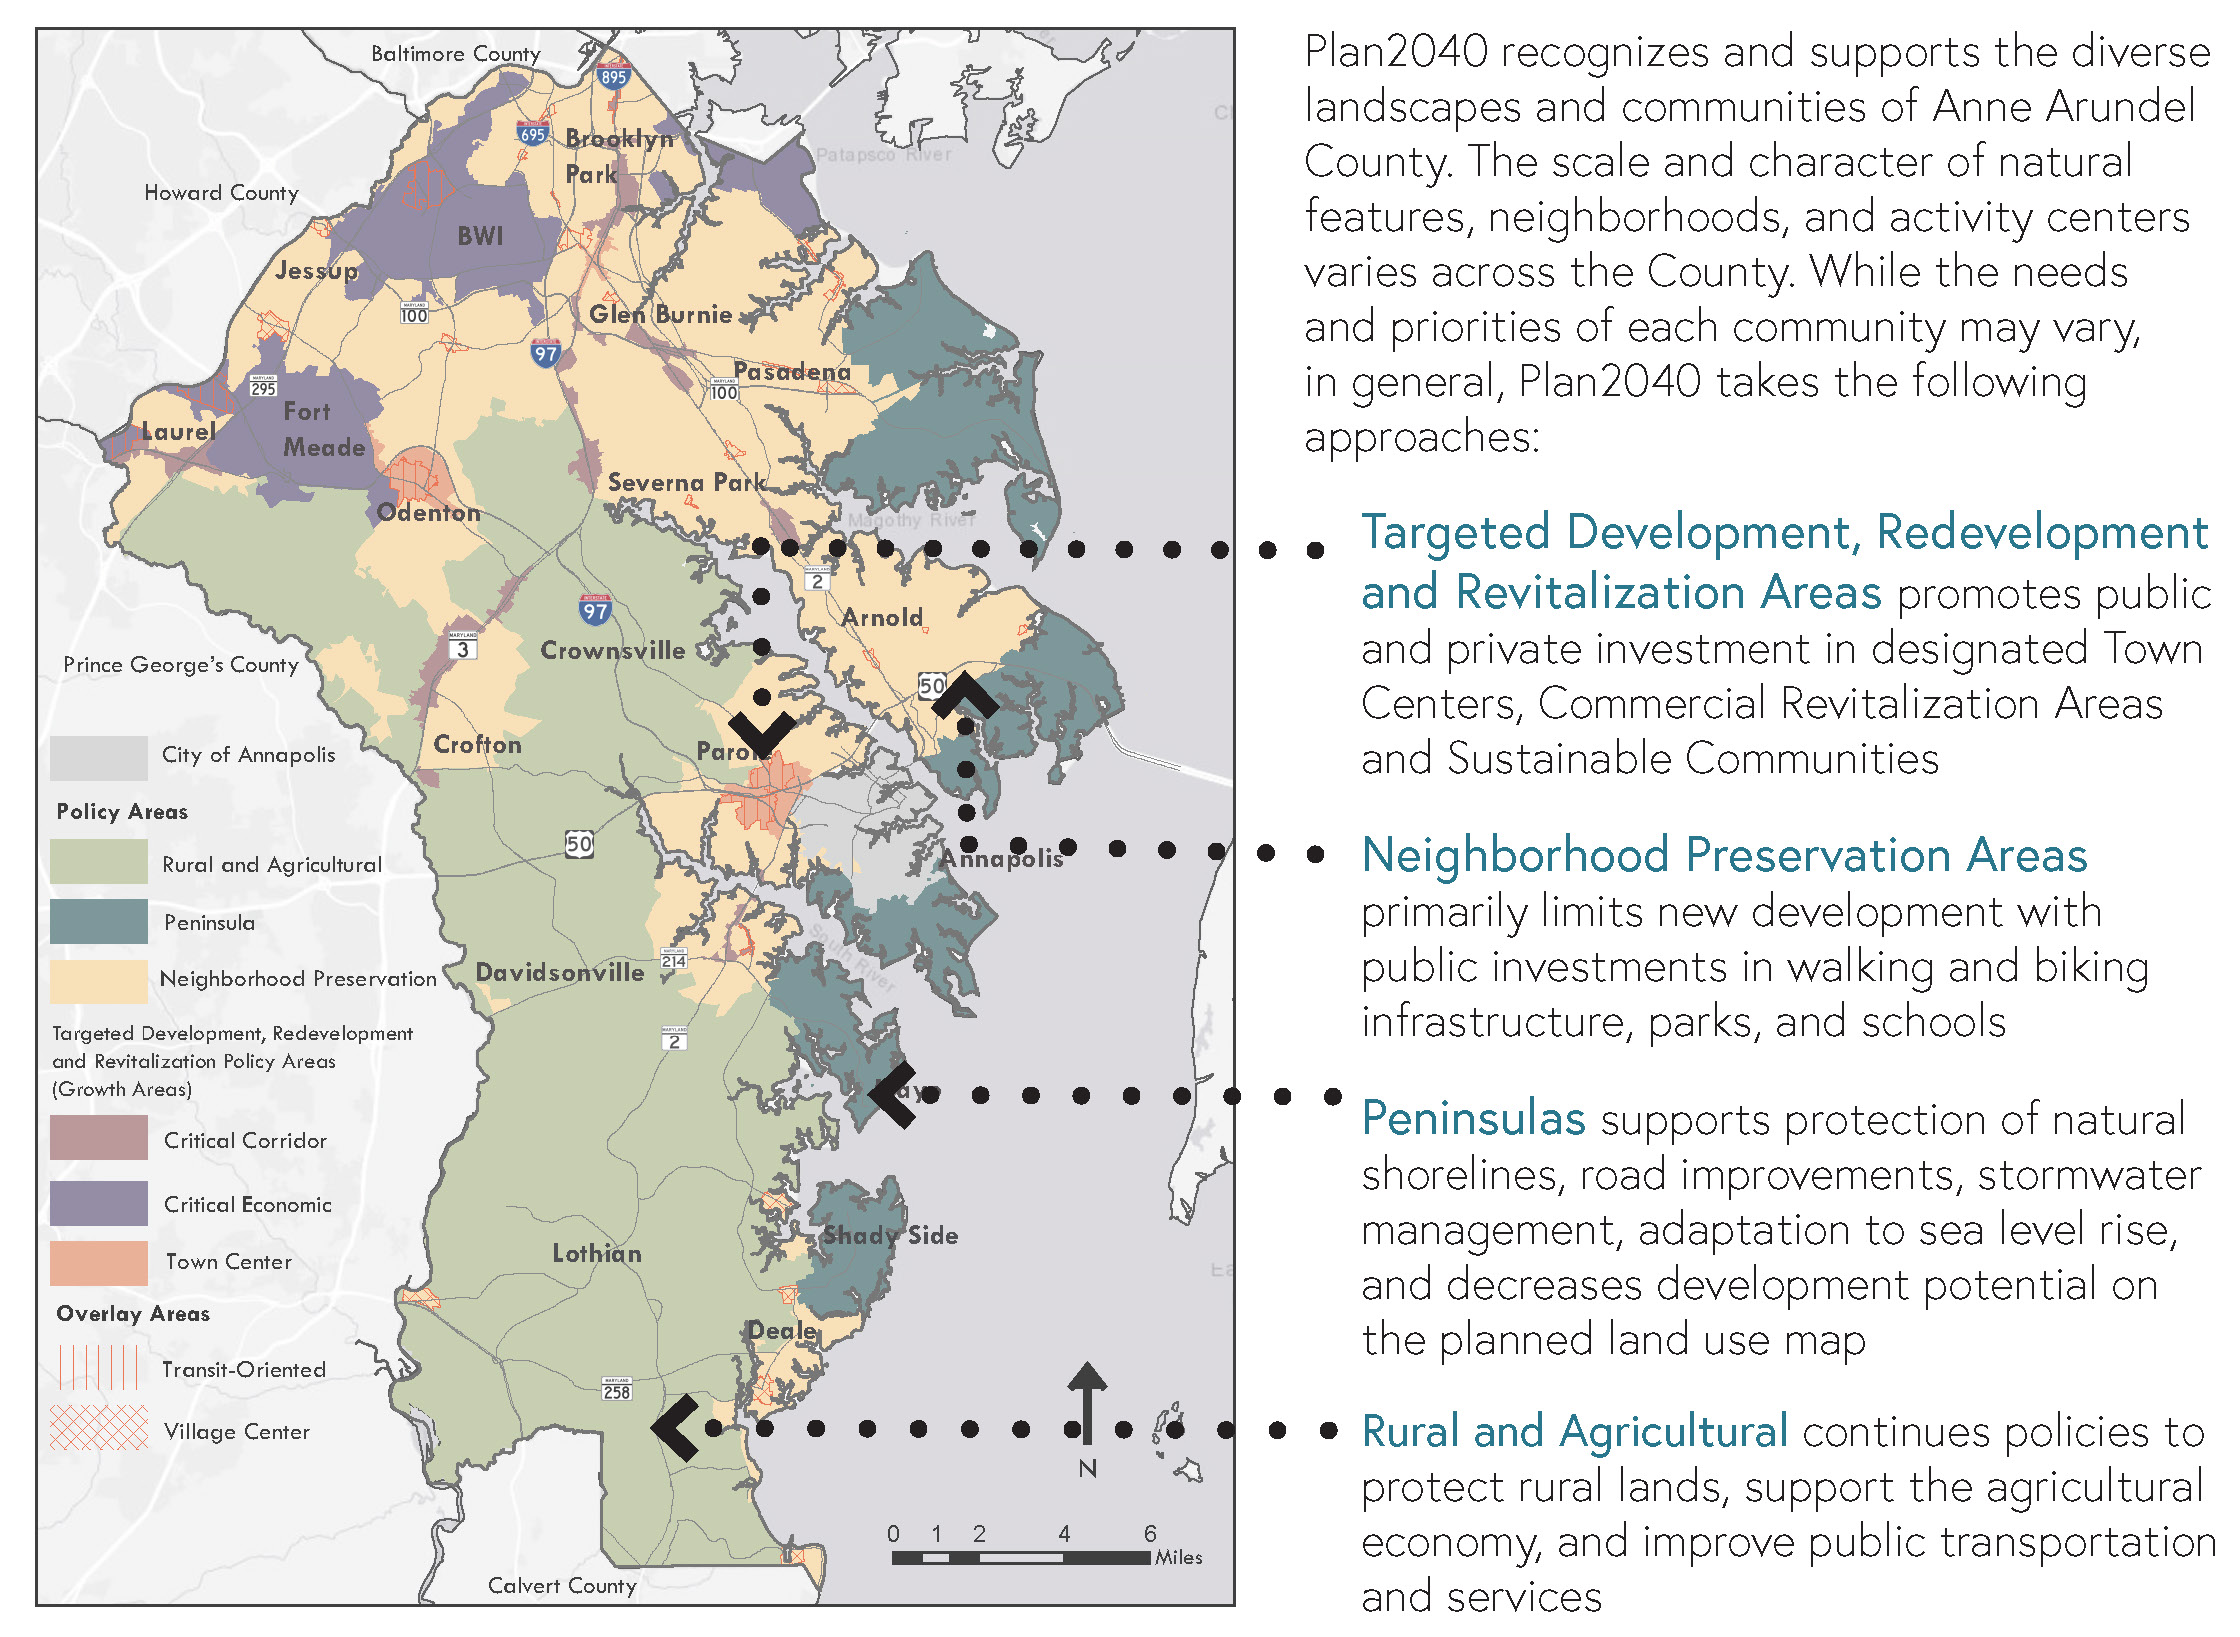 Development Policy Area Map